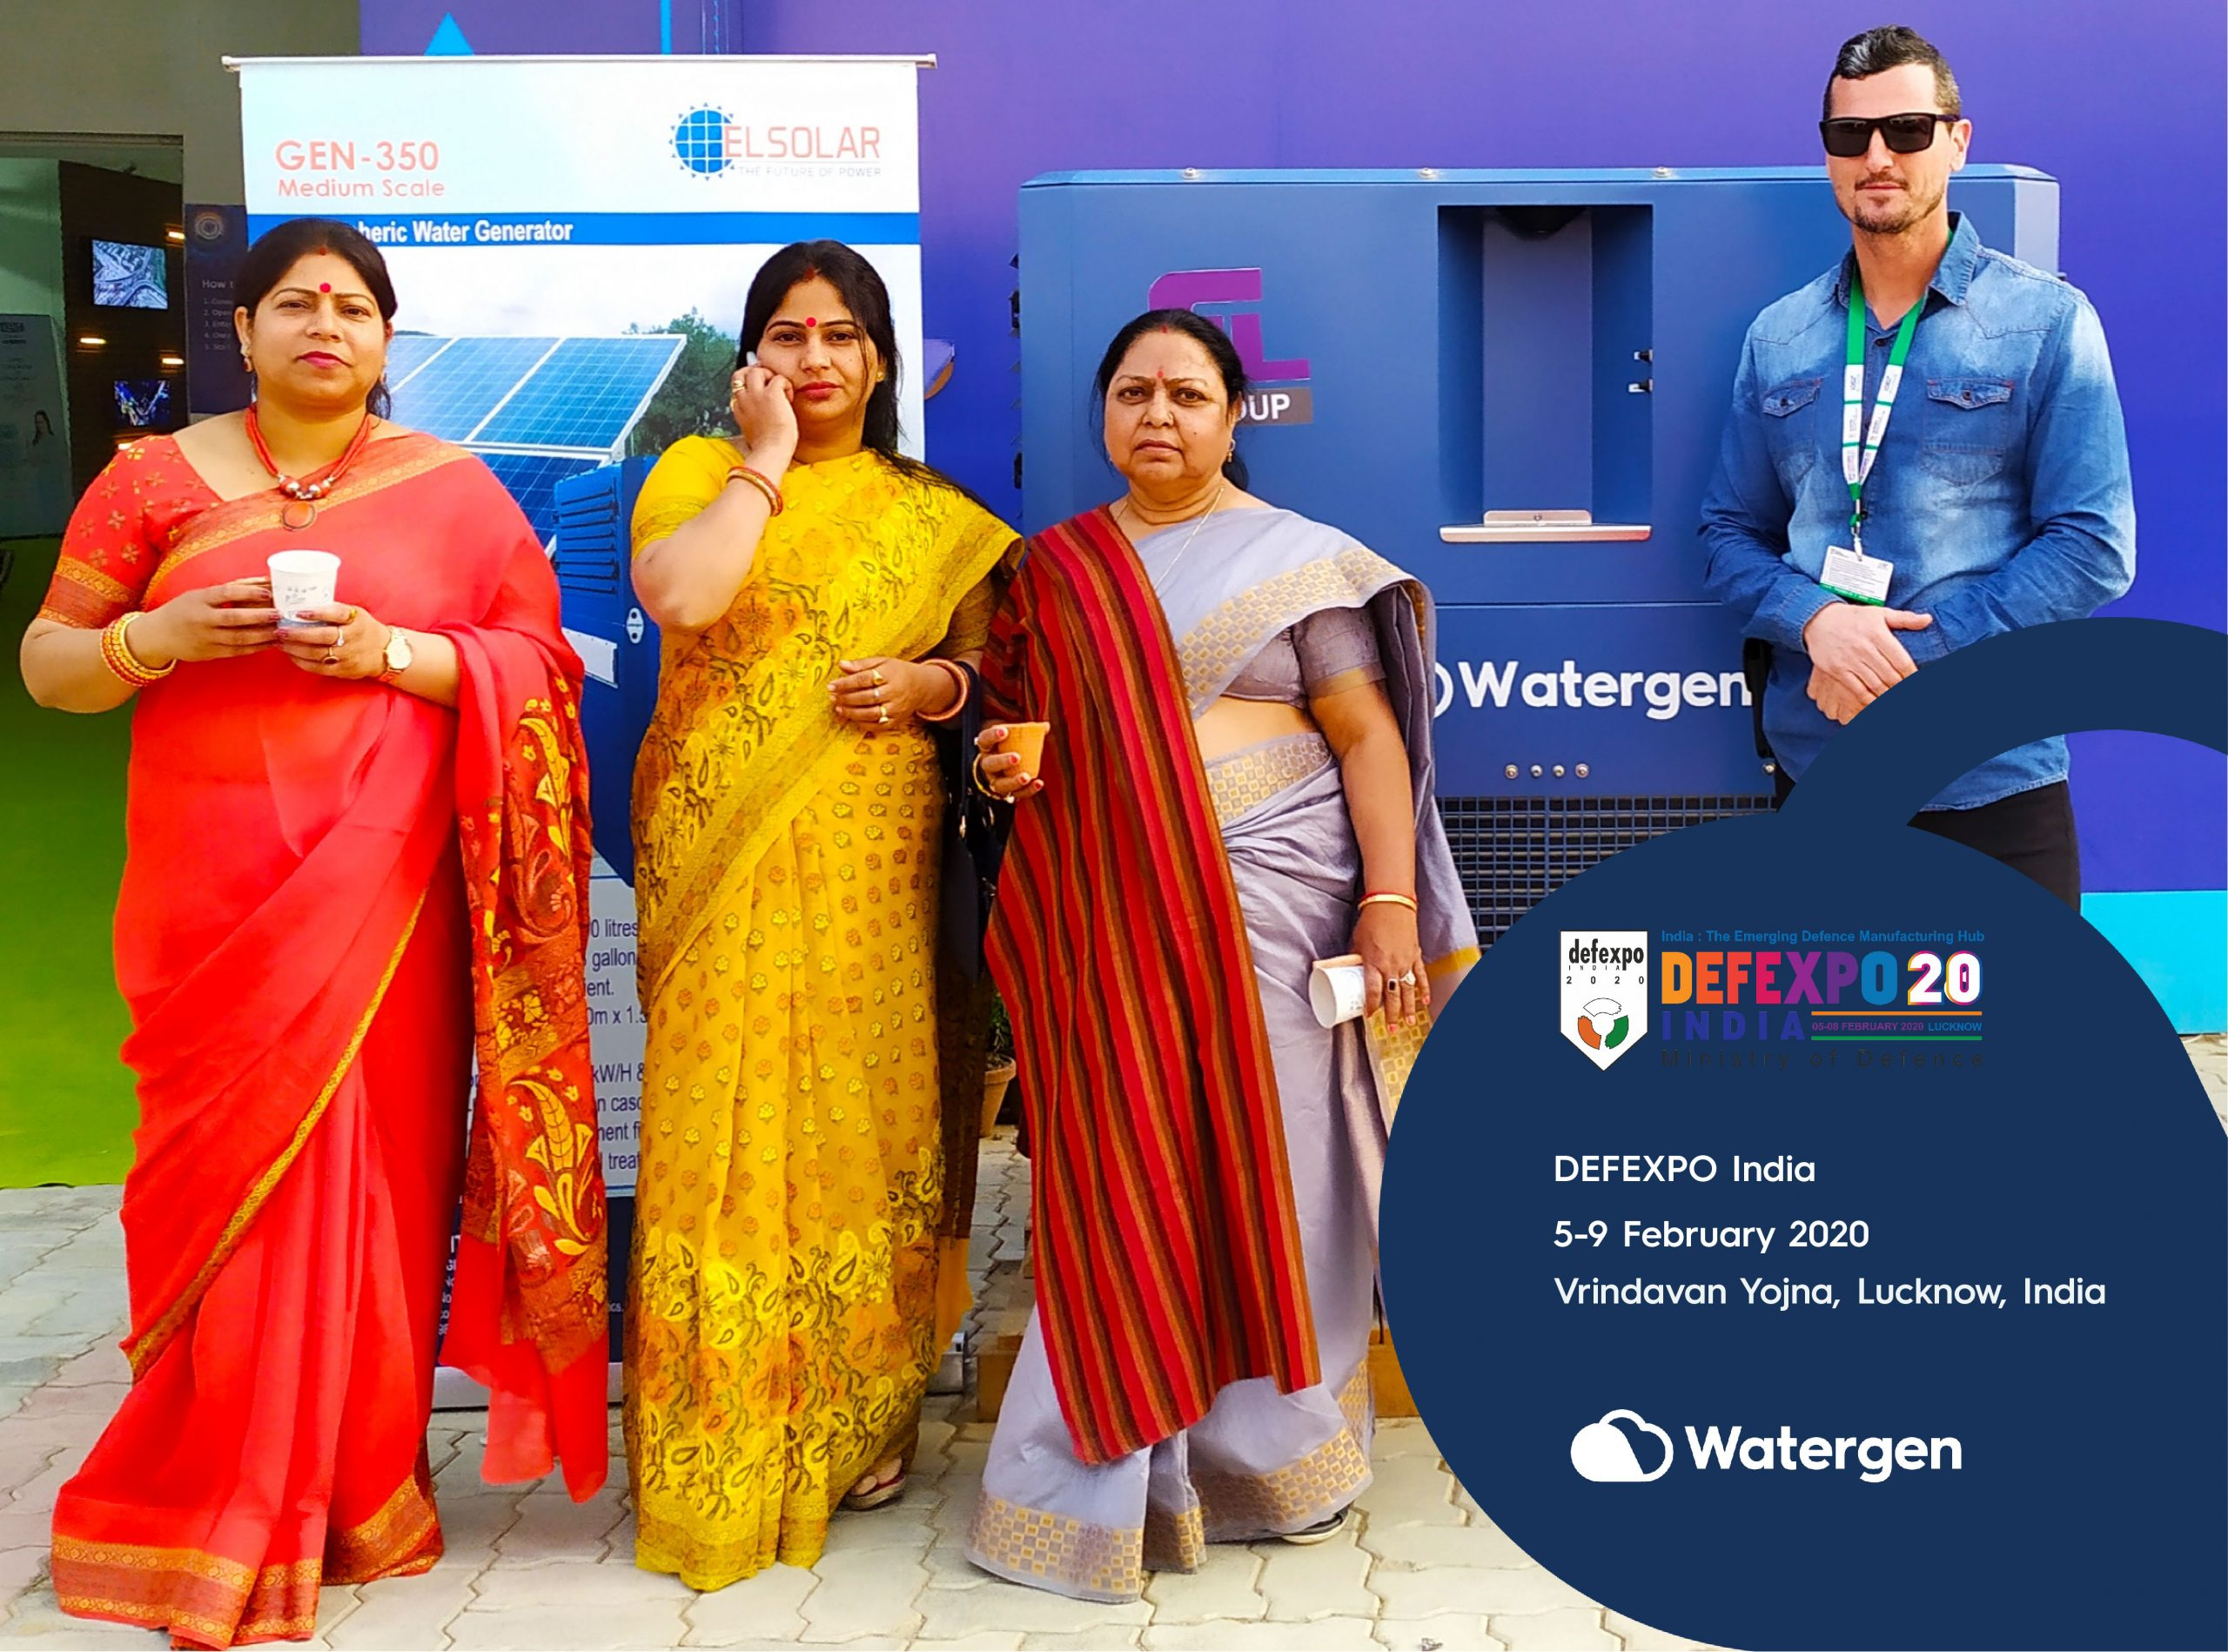 Watergen at Defexpo India